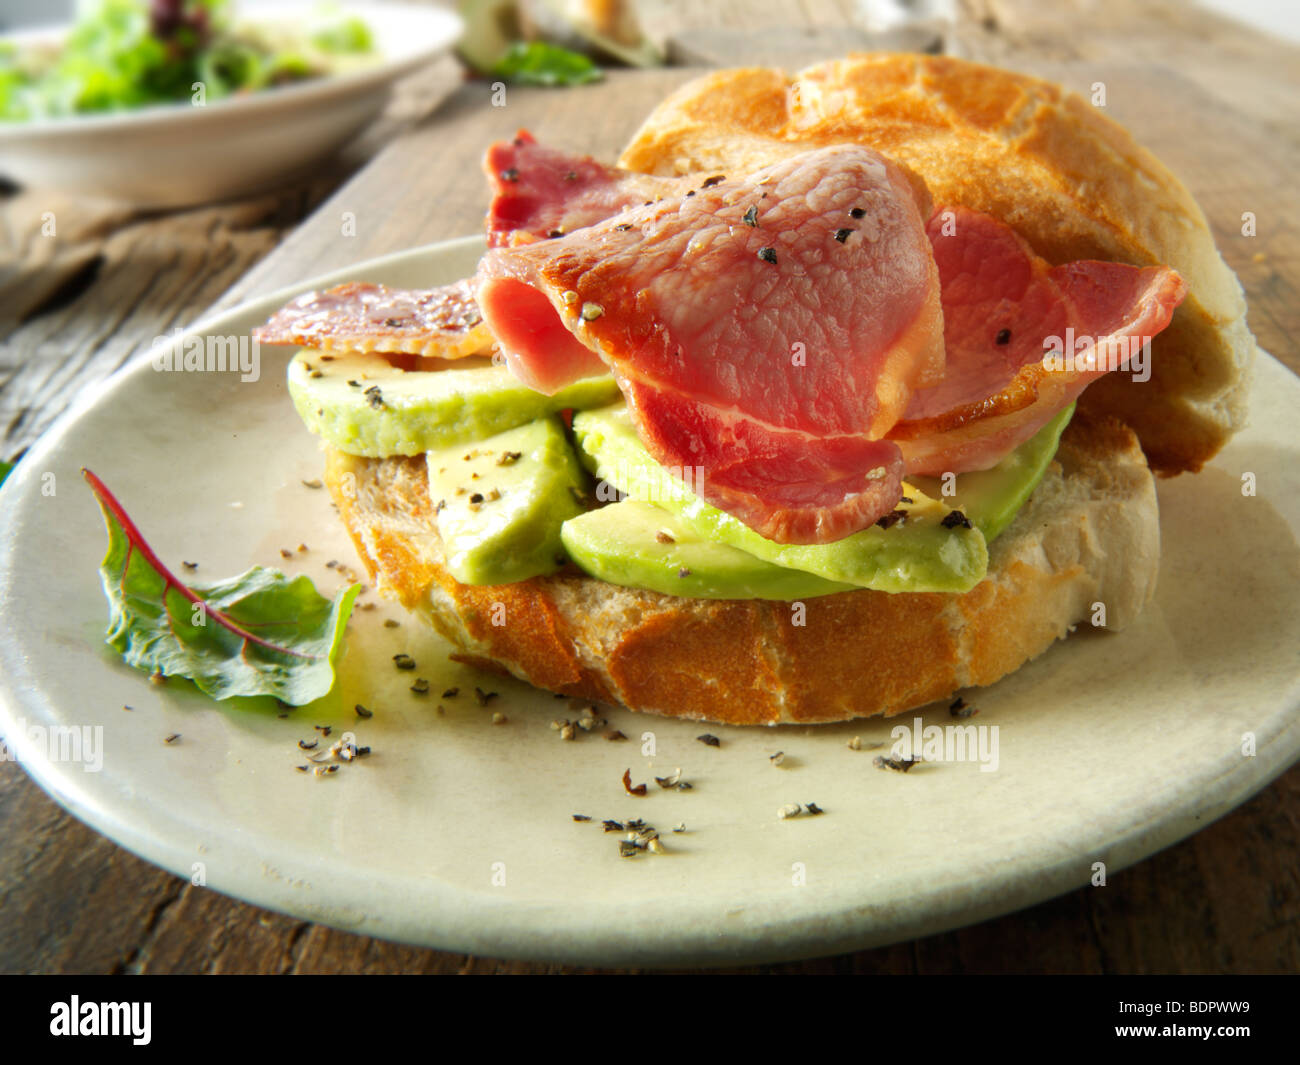 Bacon and avocado sandwich  - Stock Image